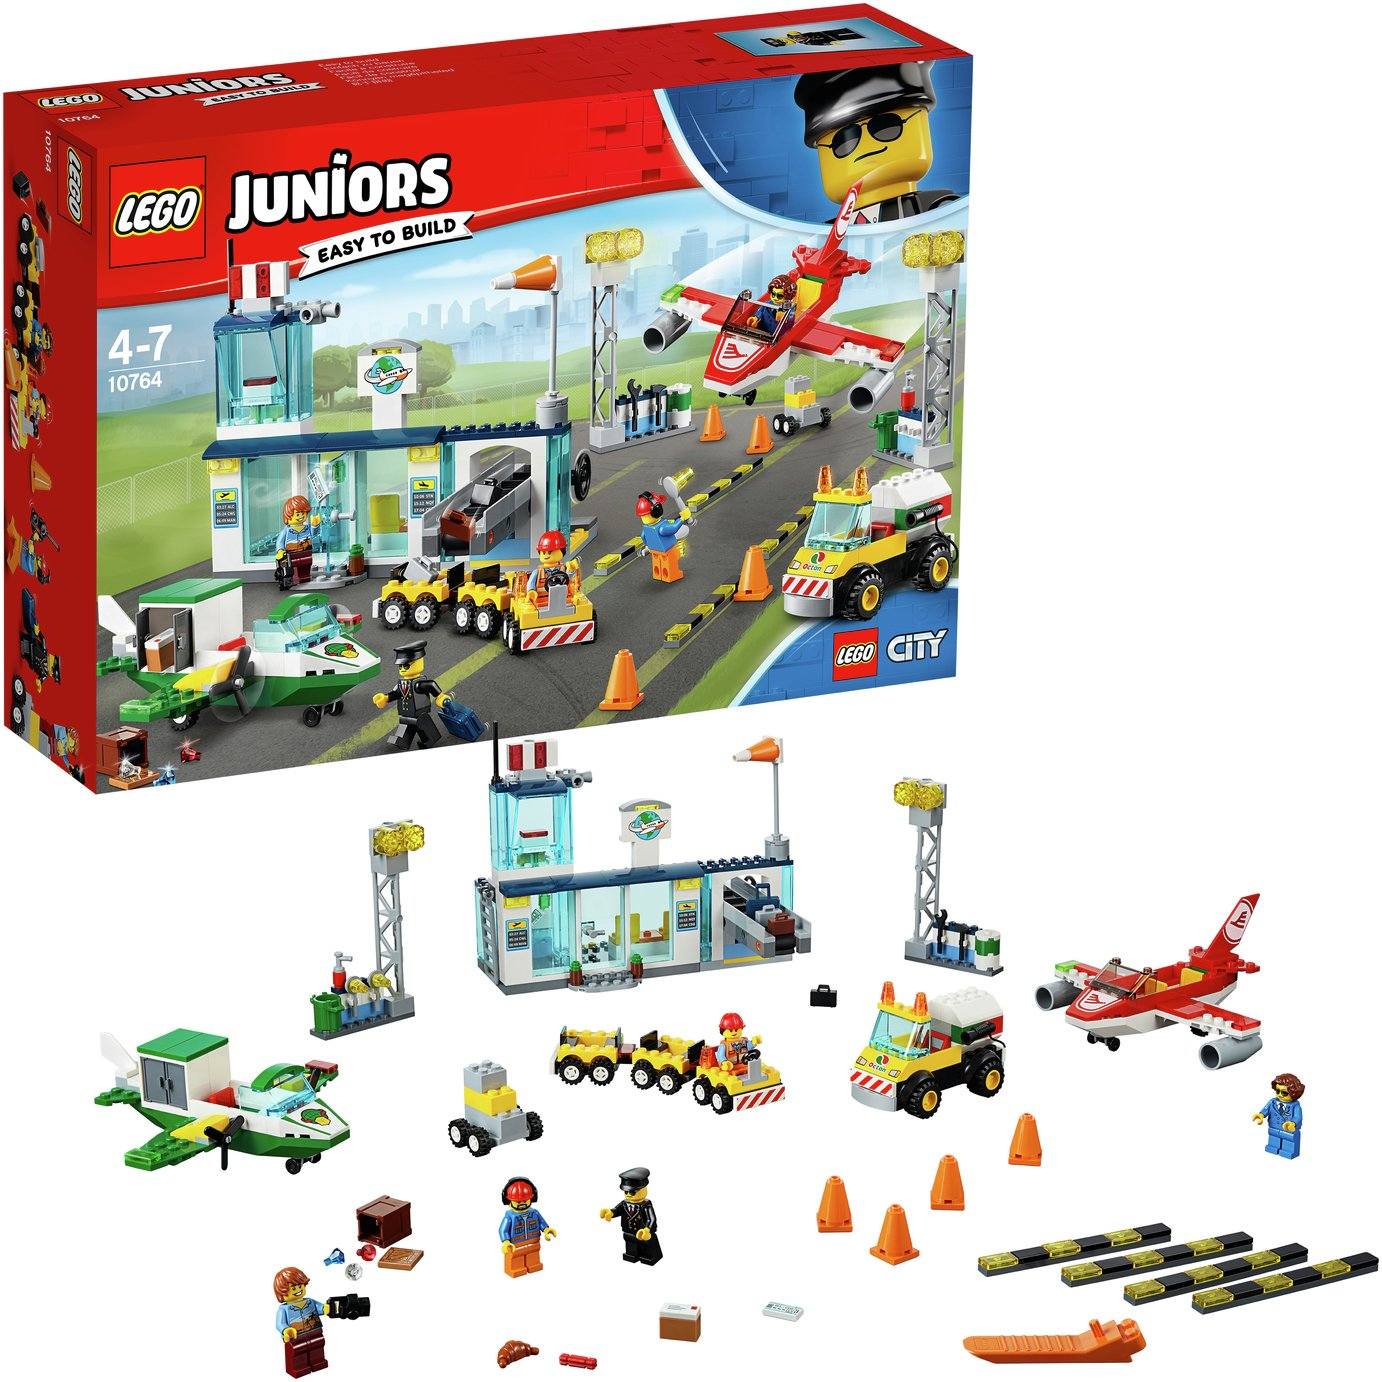 LEGO Juniors City Central Airport - 10764